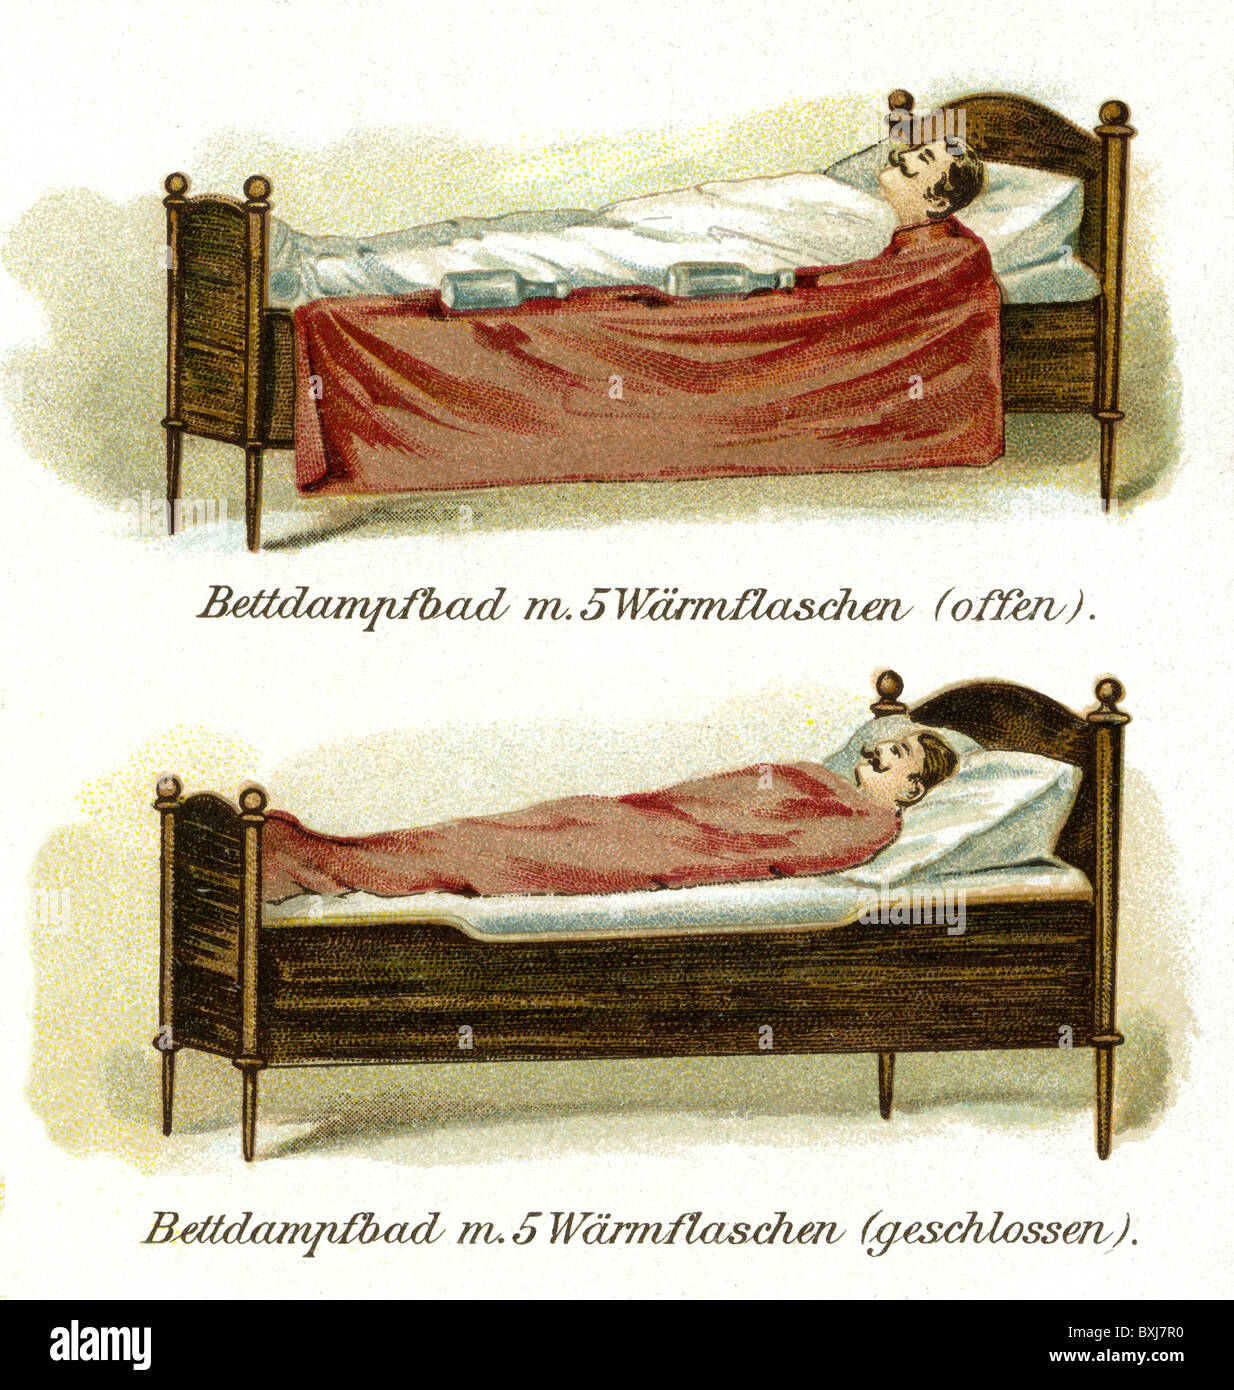 medicine, treatments, steam bath bed, patient lying in bed, Germany, circa  1900, Additional-Rights-Clearences-NA